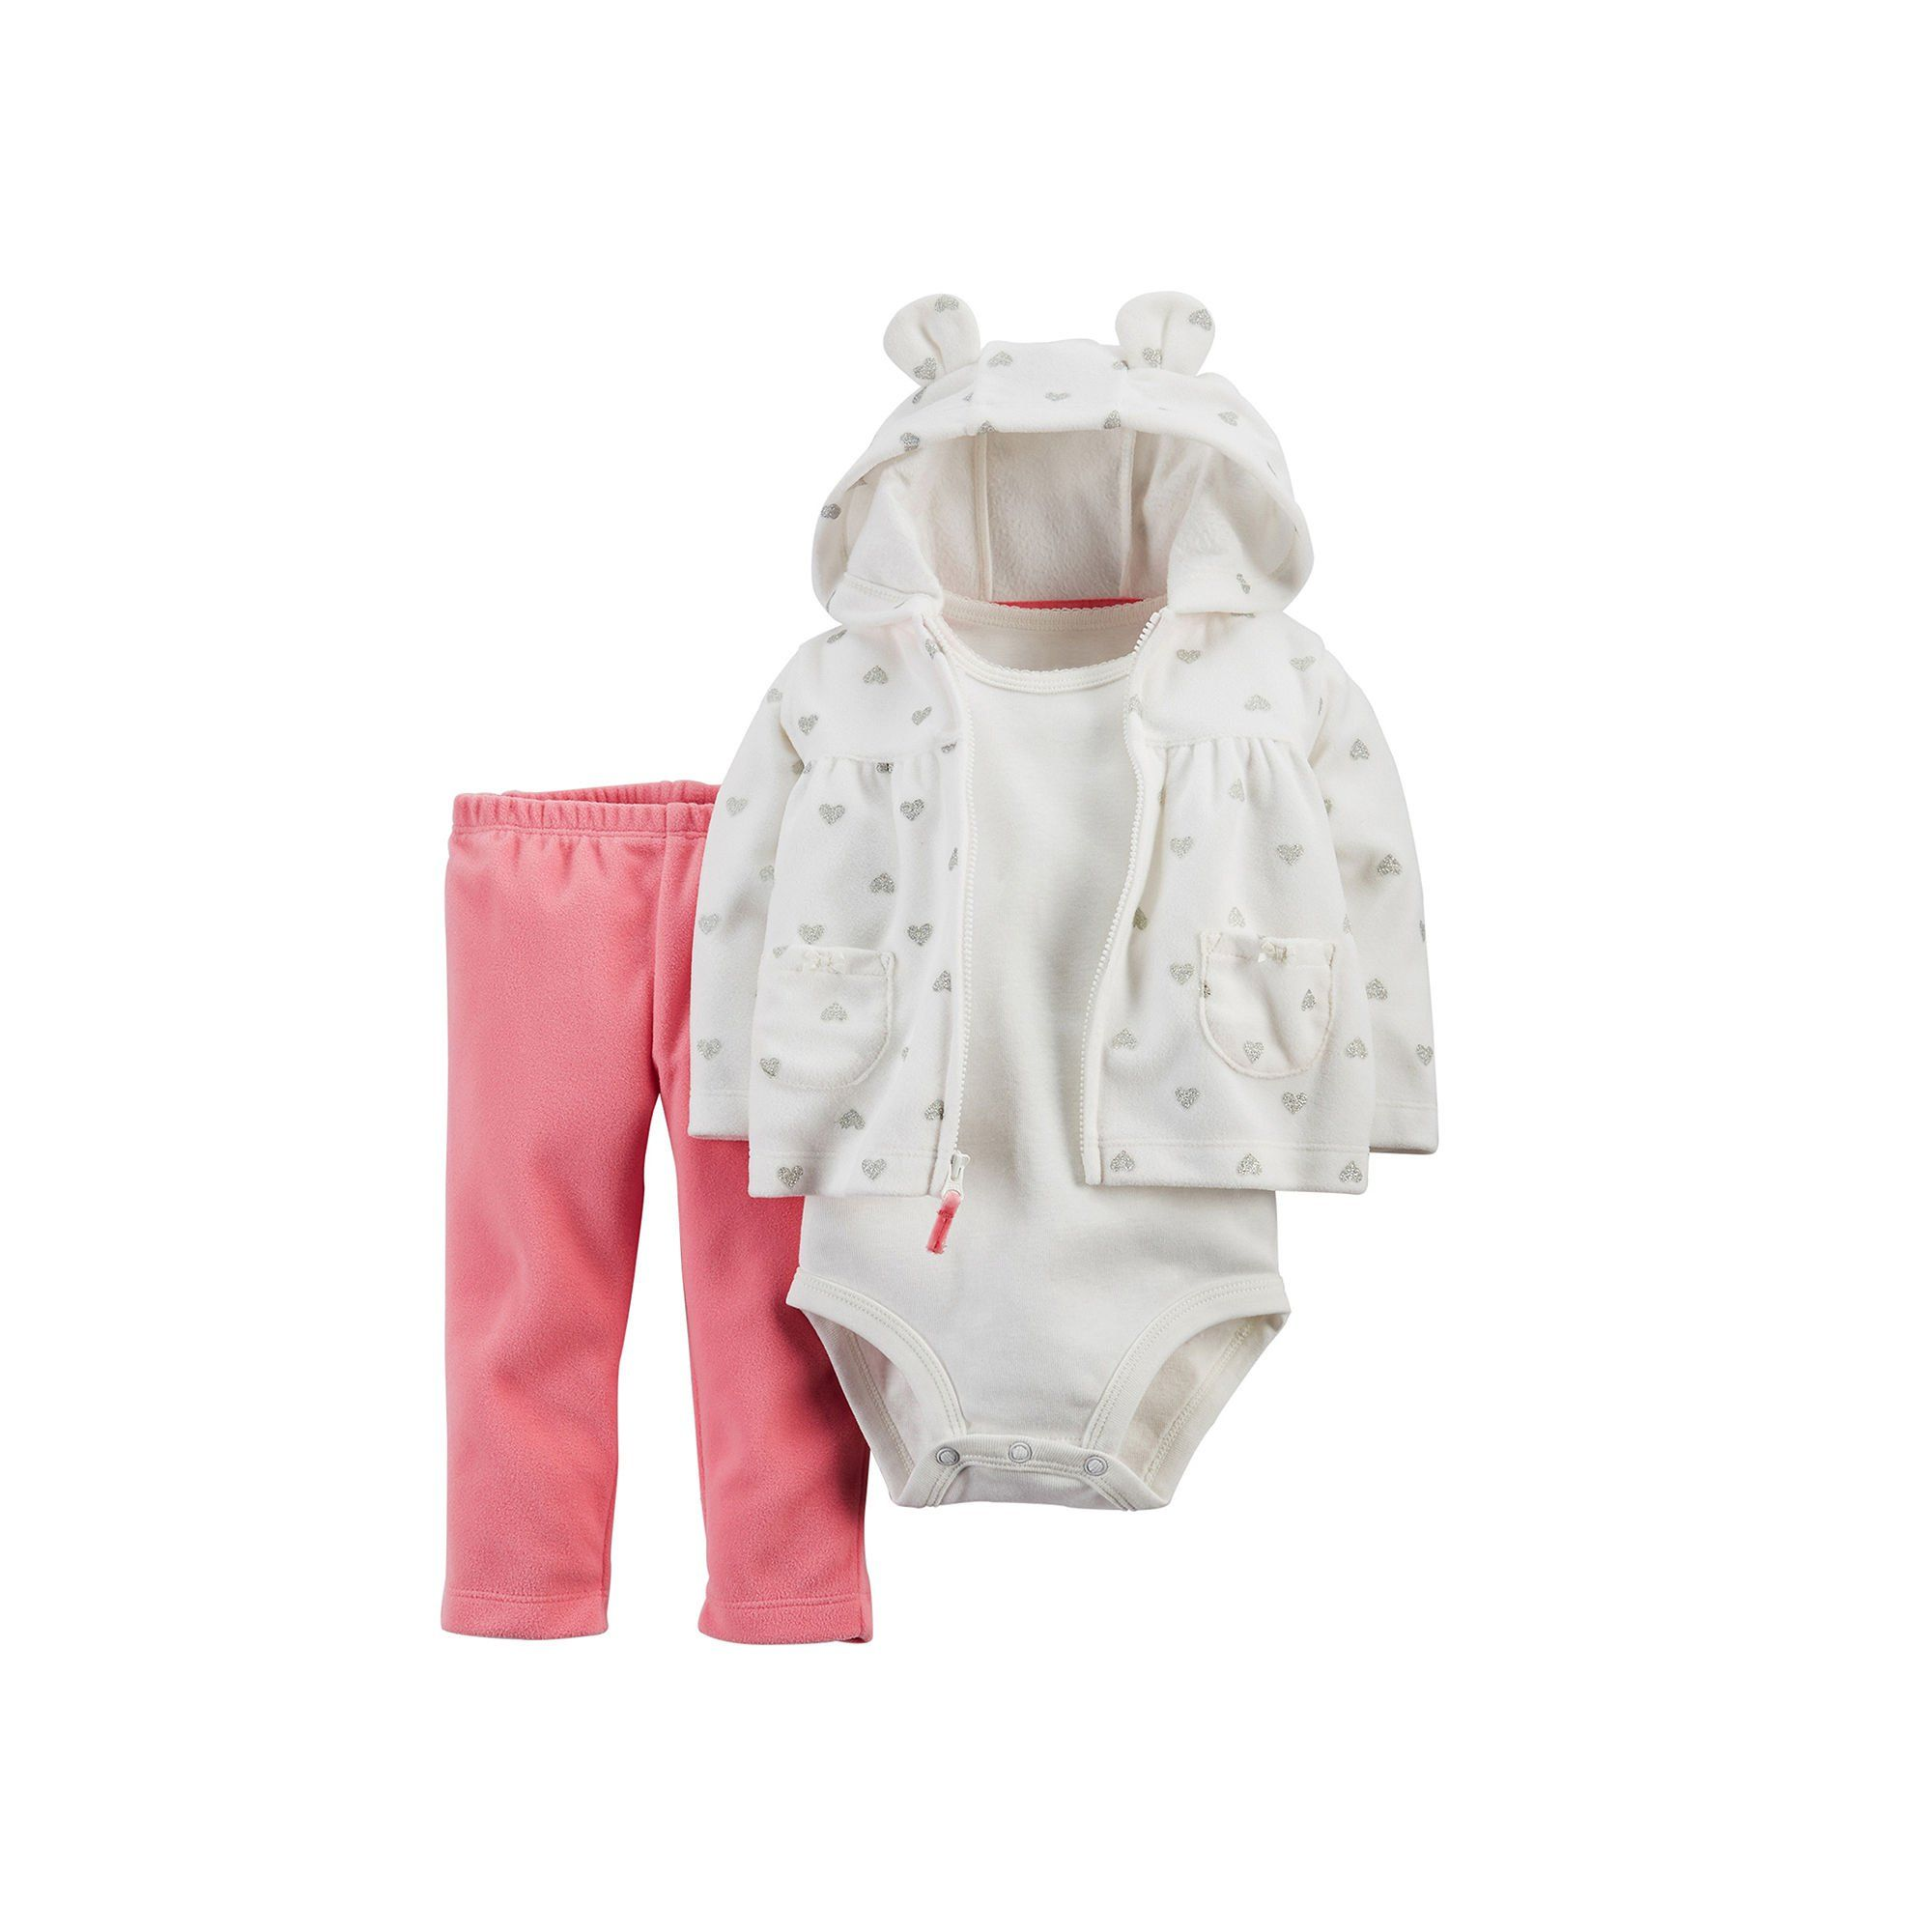 Carters Baby Girls3piece Cardigan Set 18months Details